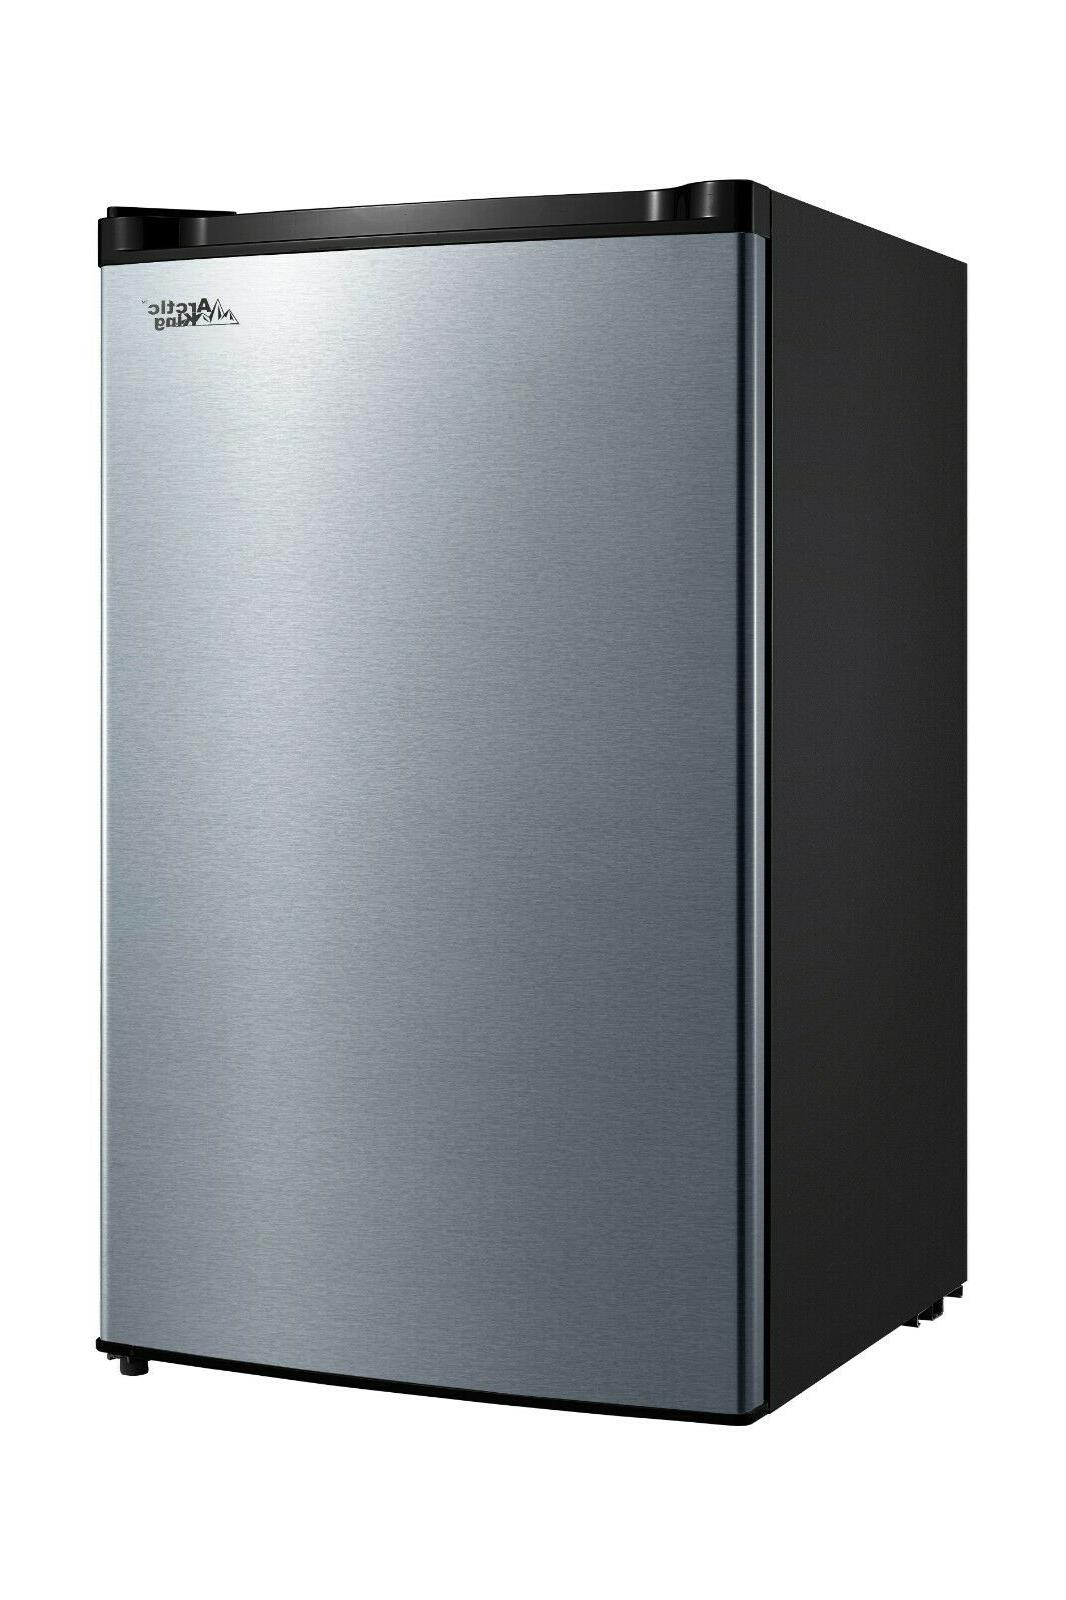 4.4 Fridge Small Compact with Chiller